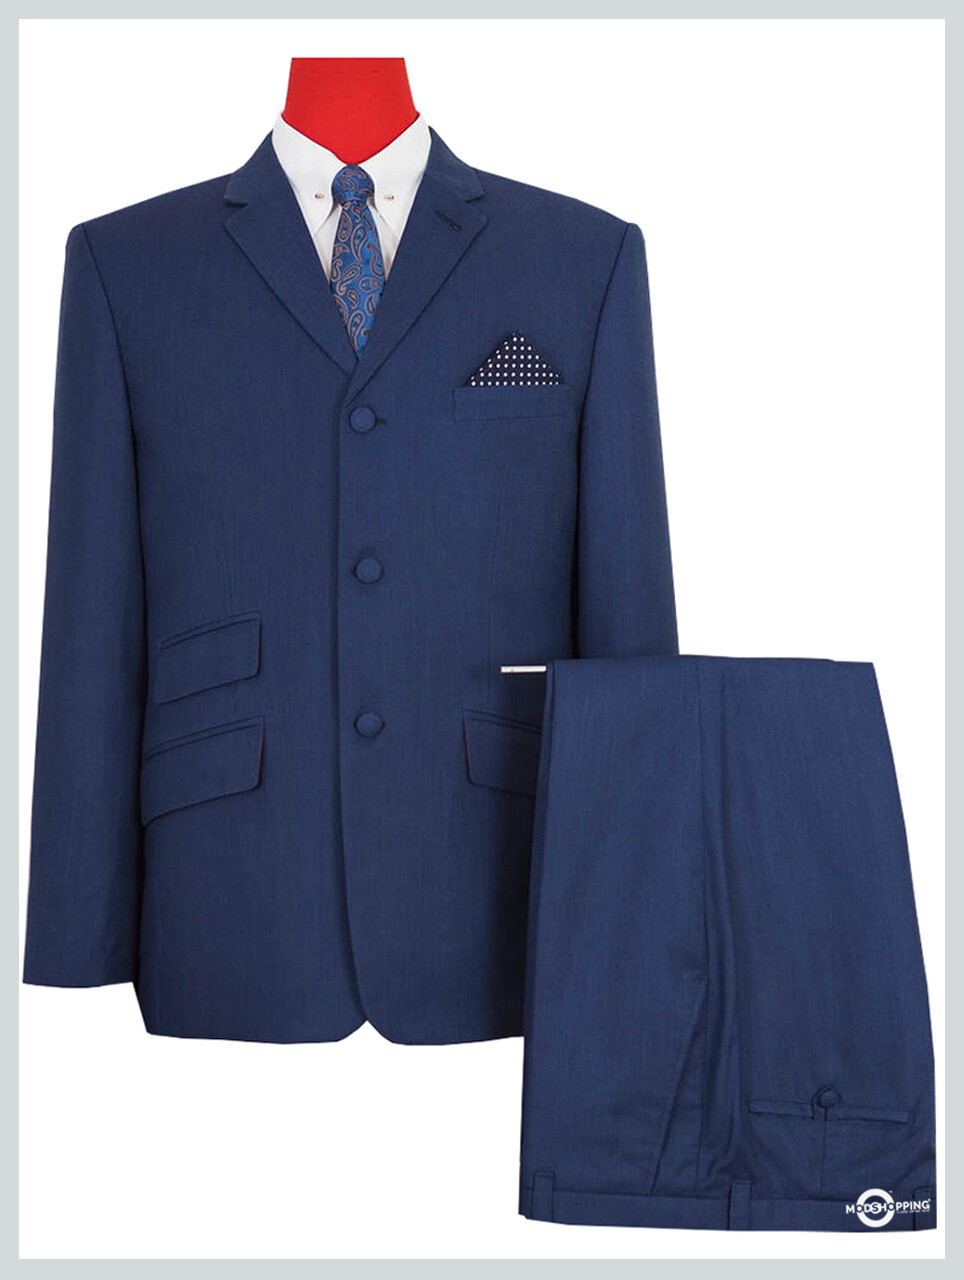 Tailored Made Original 60s Mod Classic Navy Suit